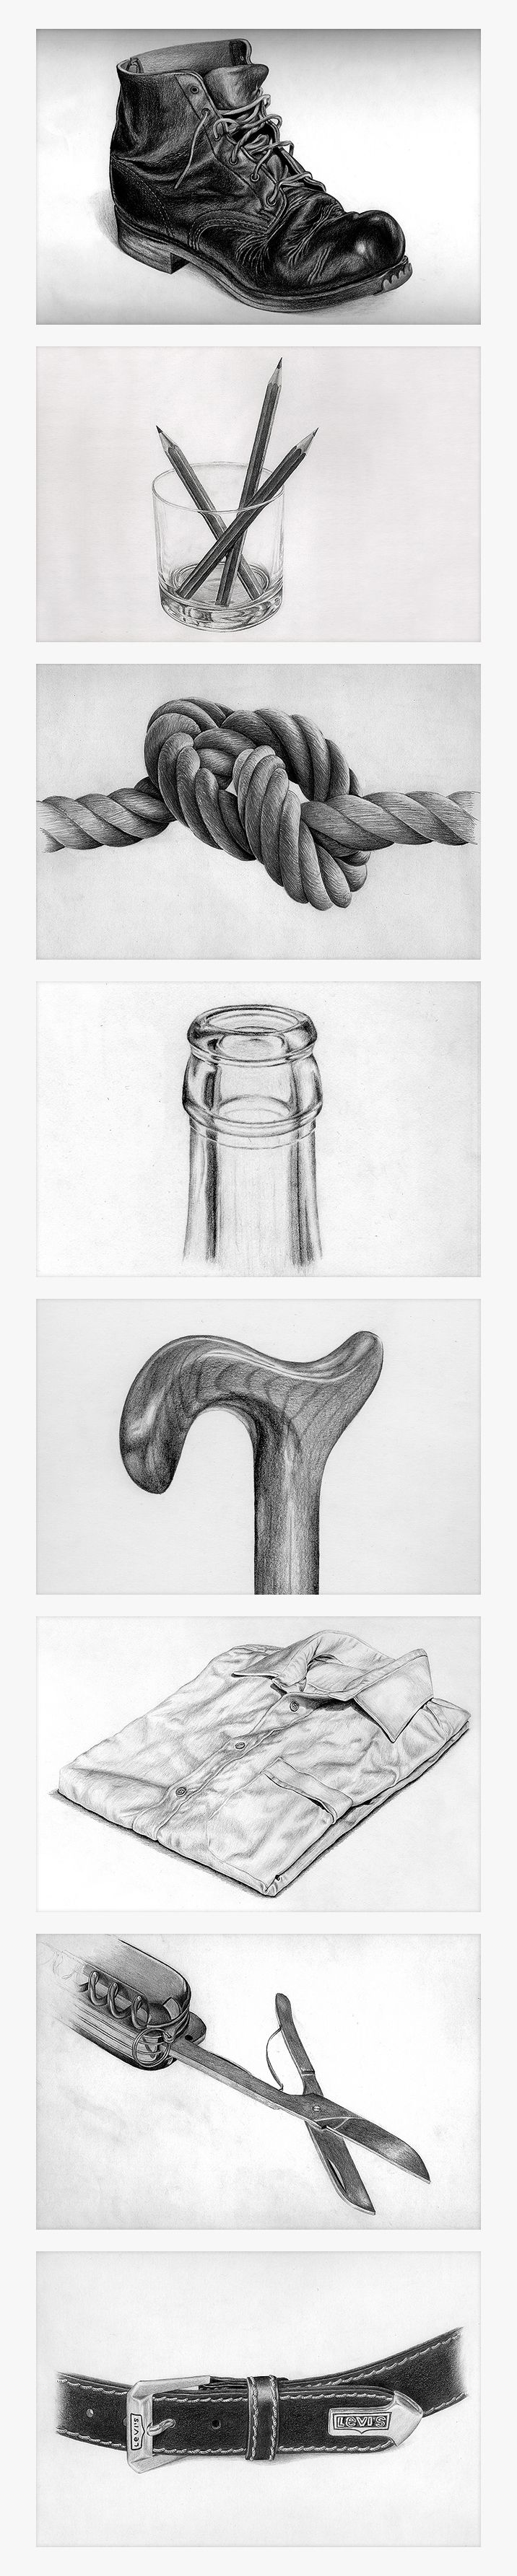 "Pencil Drawing ""Found object"" sketching exercise"